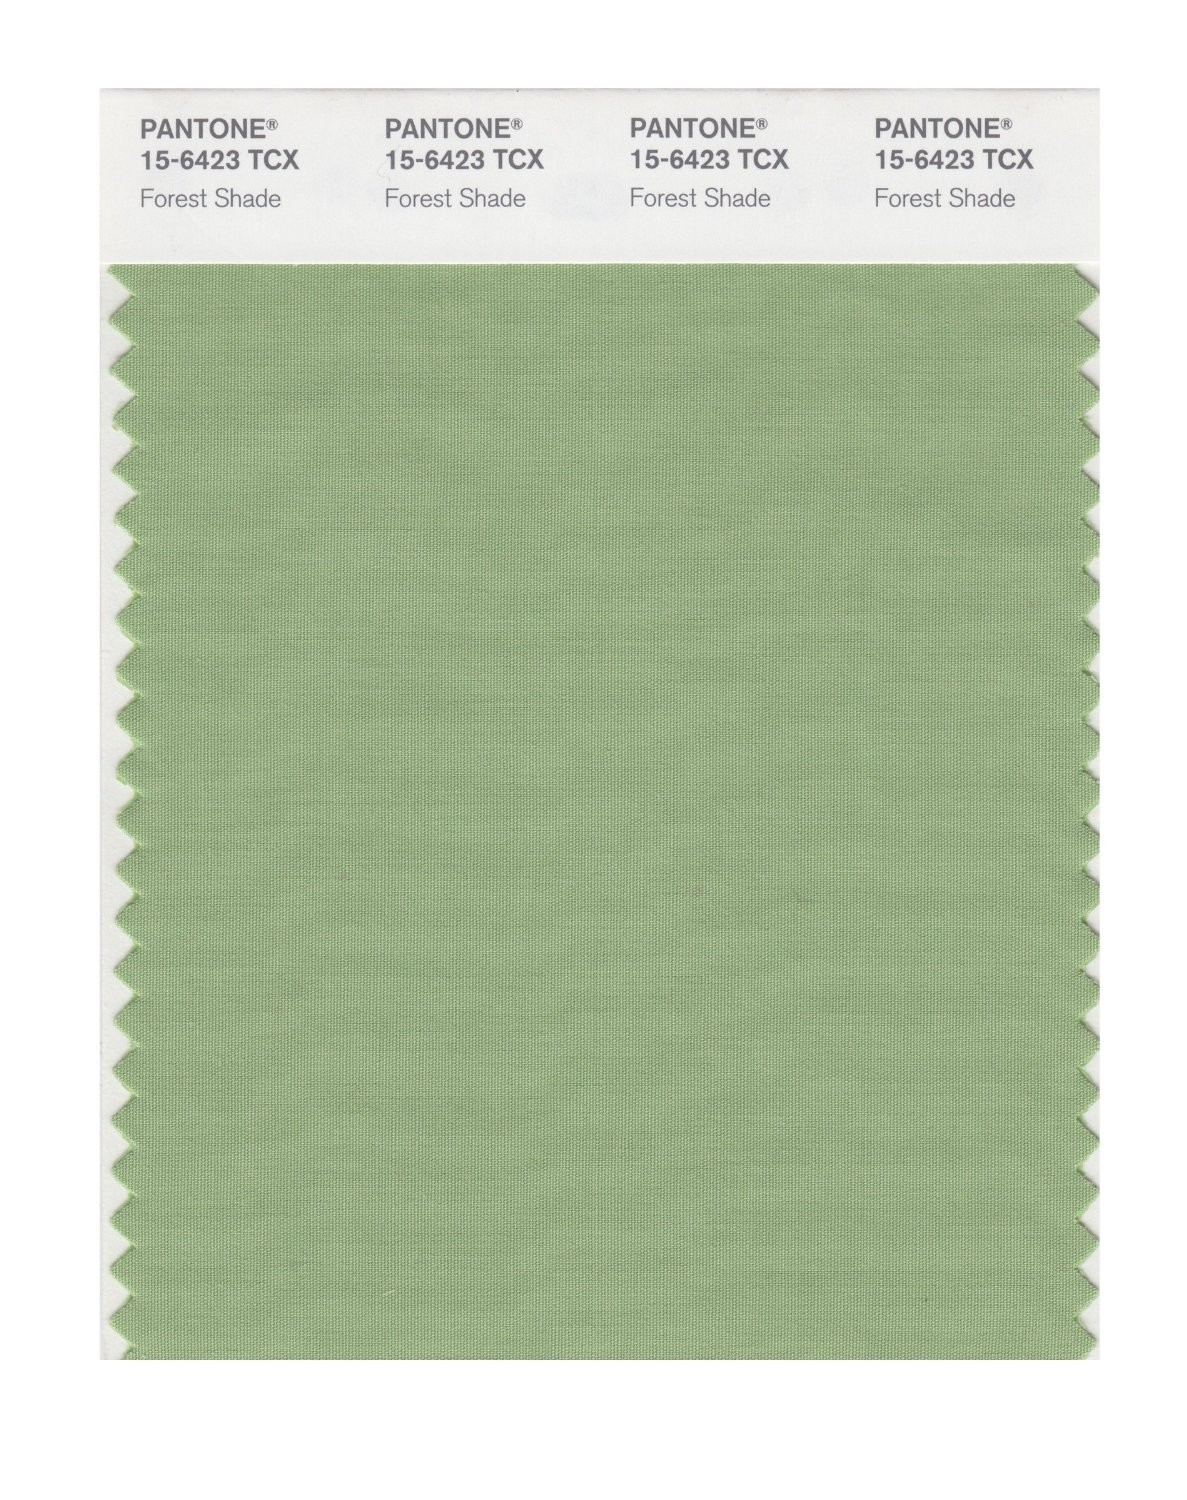 Pantone 15-6423 TCX Swatch Card Forest Shade